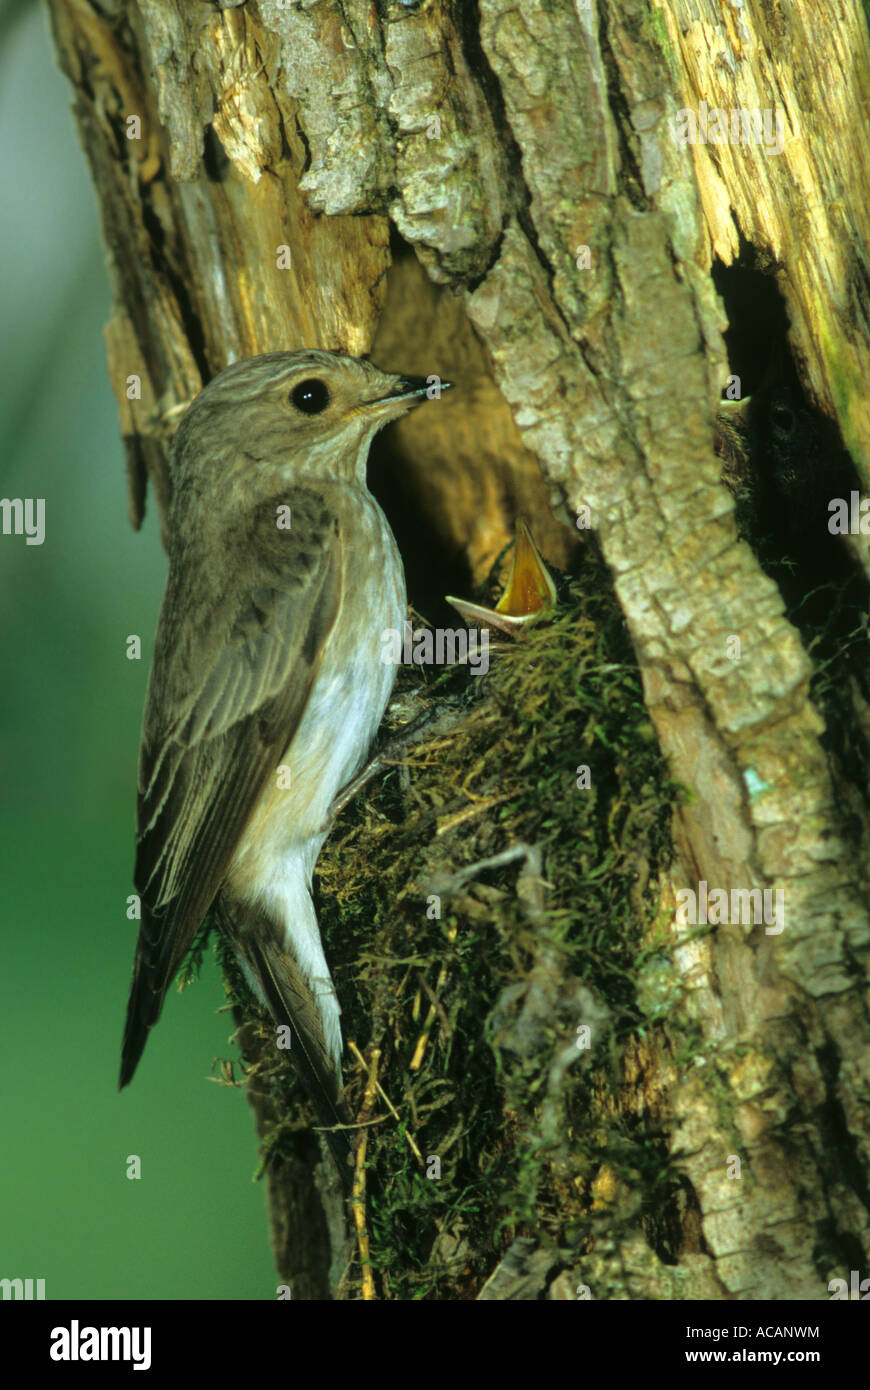 Spotted Flycatcher (Muscicapa striata) at nest with fledglings - Stock Image